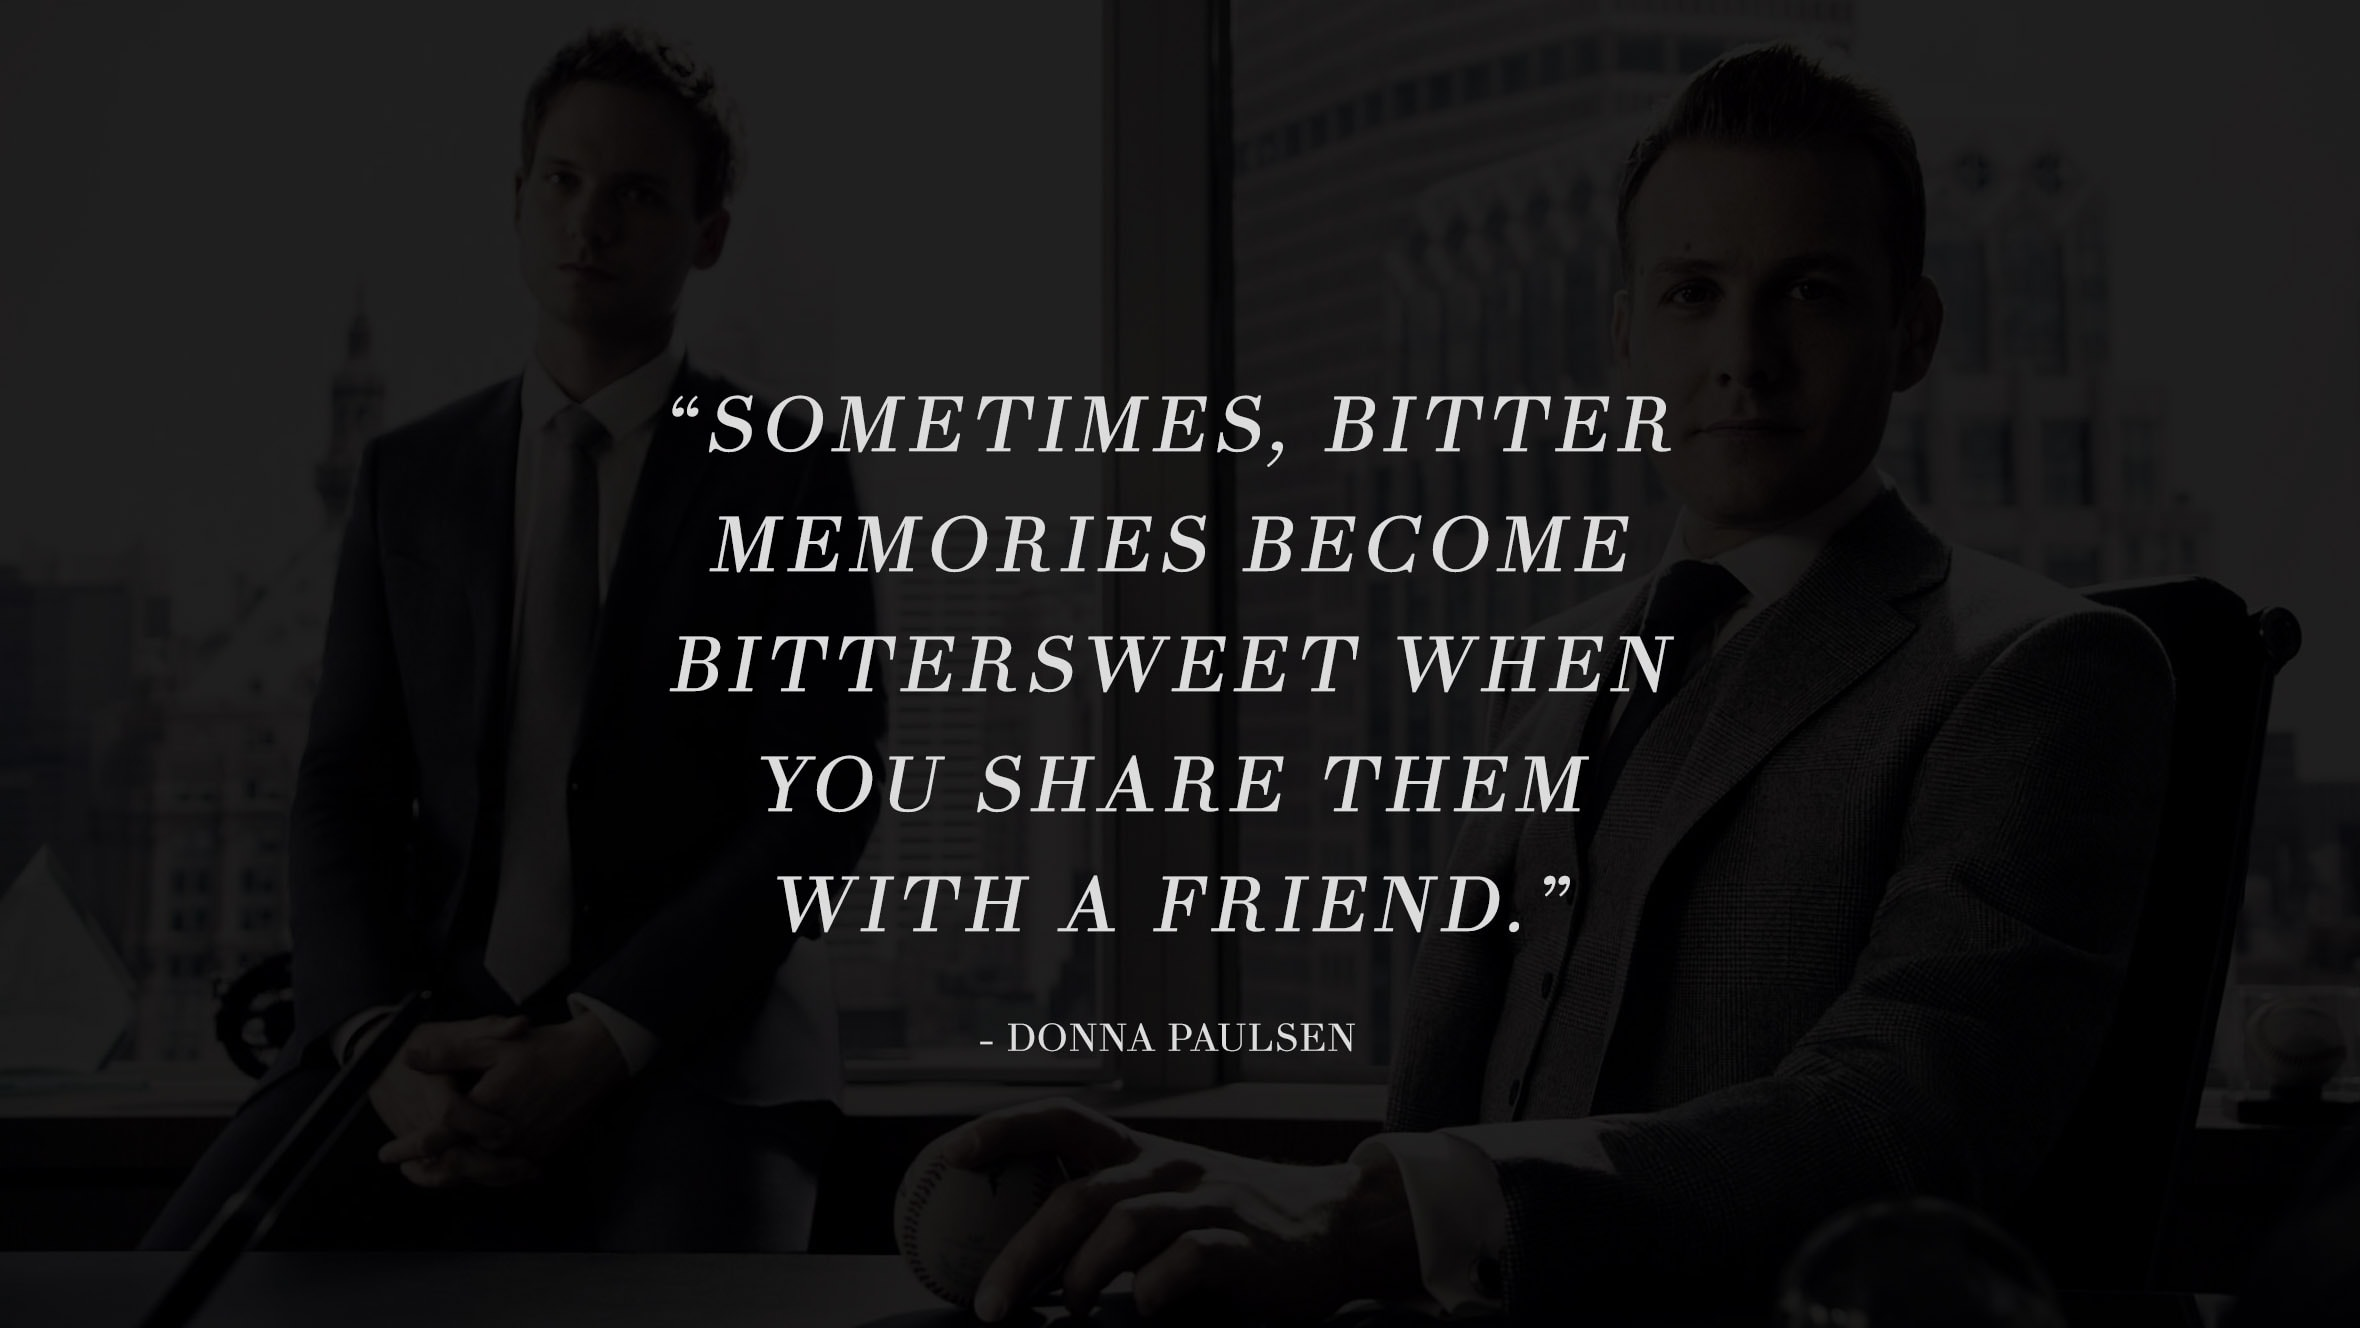 13 Highly Inspiring And Motivating Quotes From The Successful TV Series Suits 12